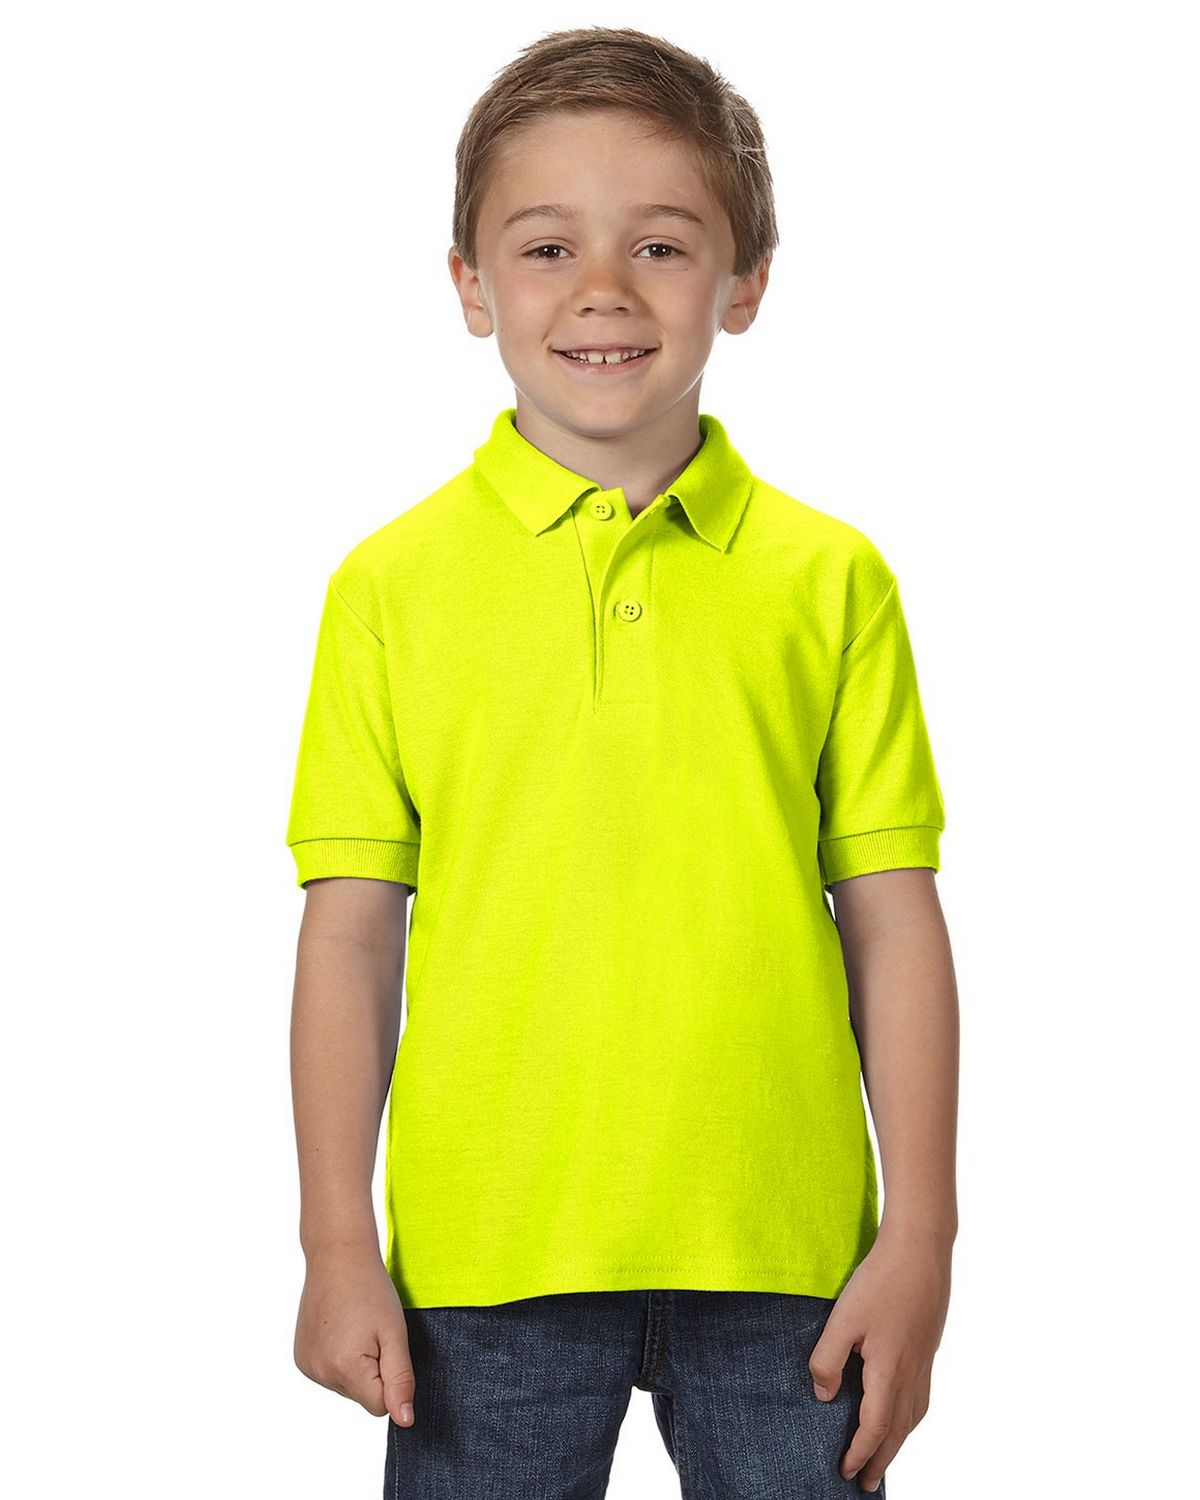 Gildan Polo Shirts In Bulk T Shirt